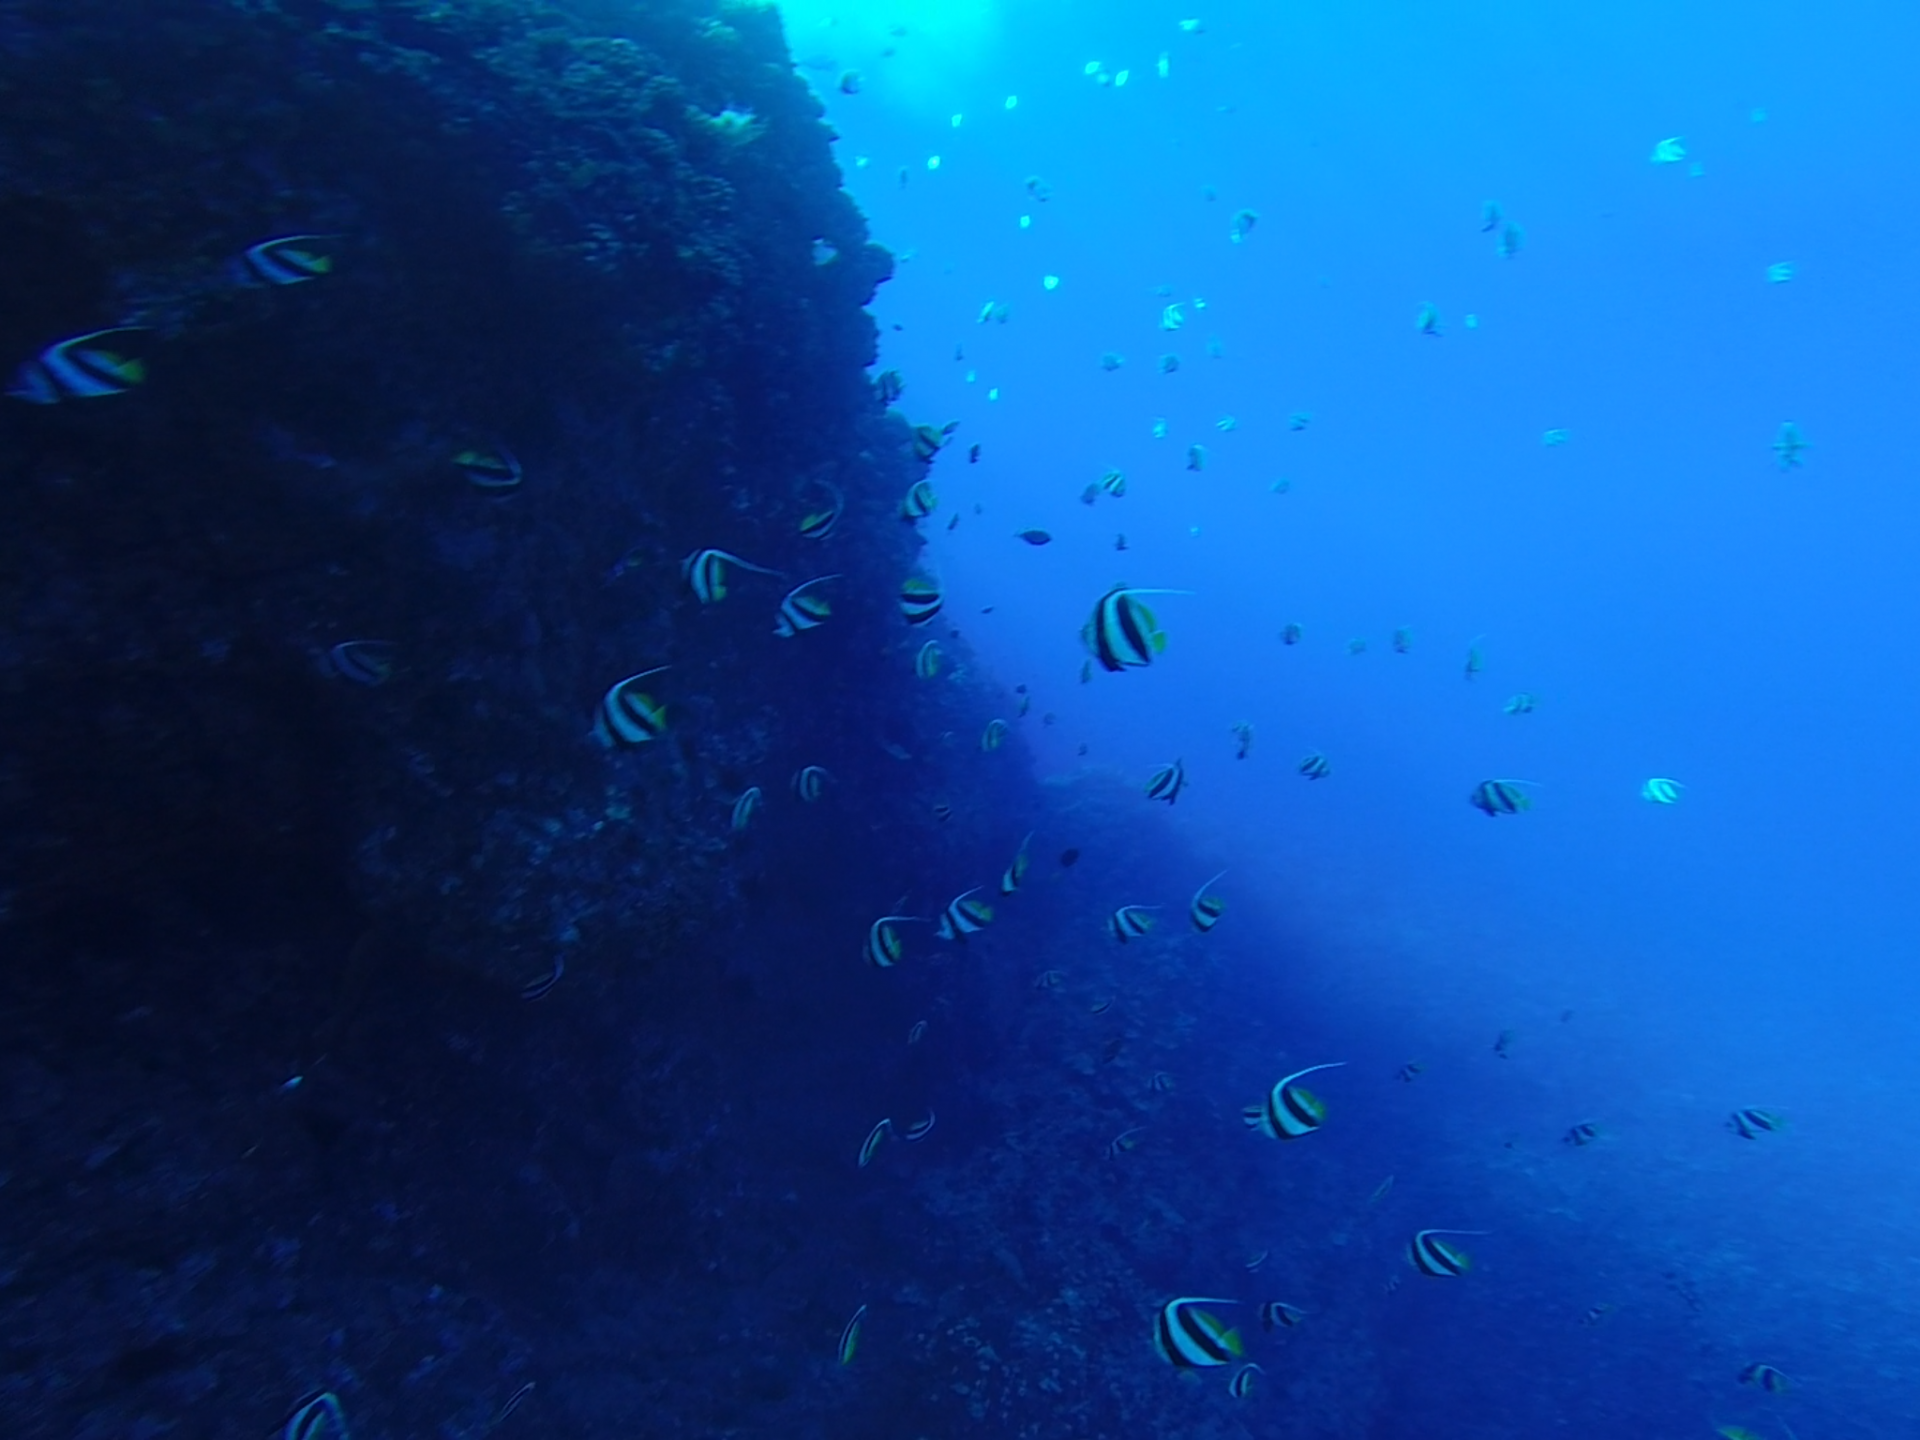 First time snorkeling on Maui? Let us show you the ropes.